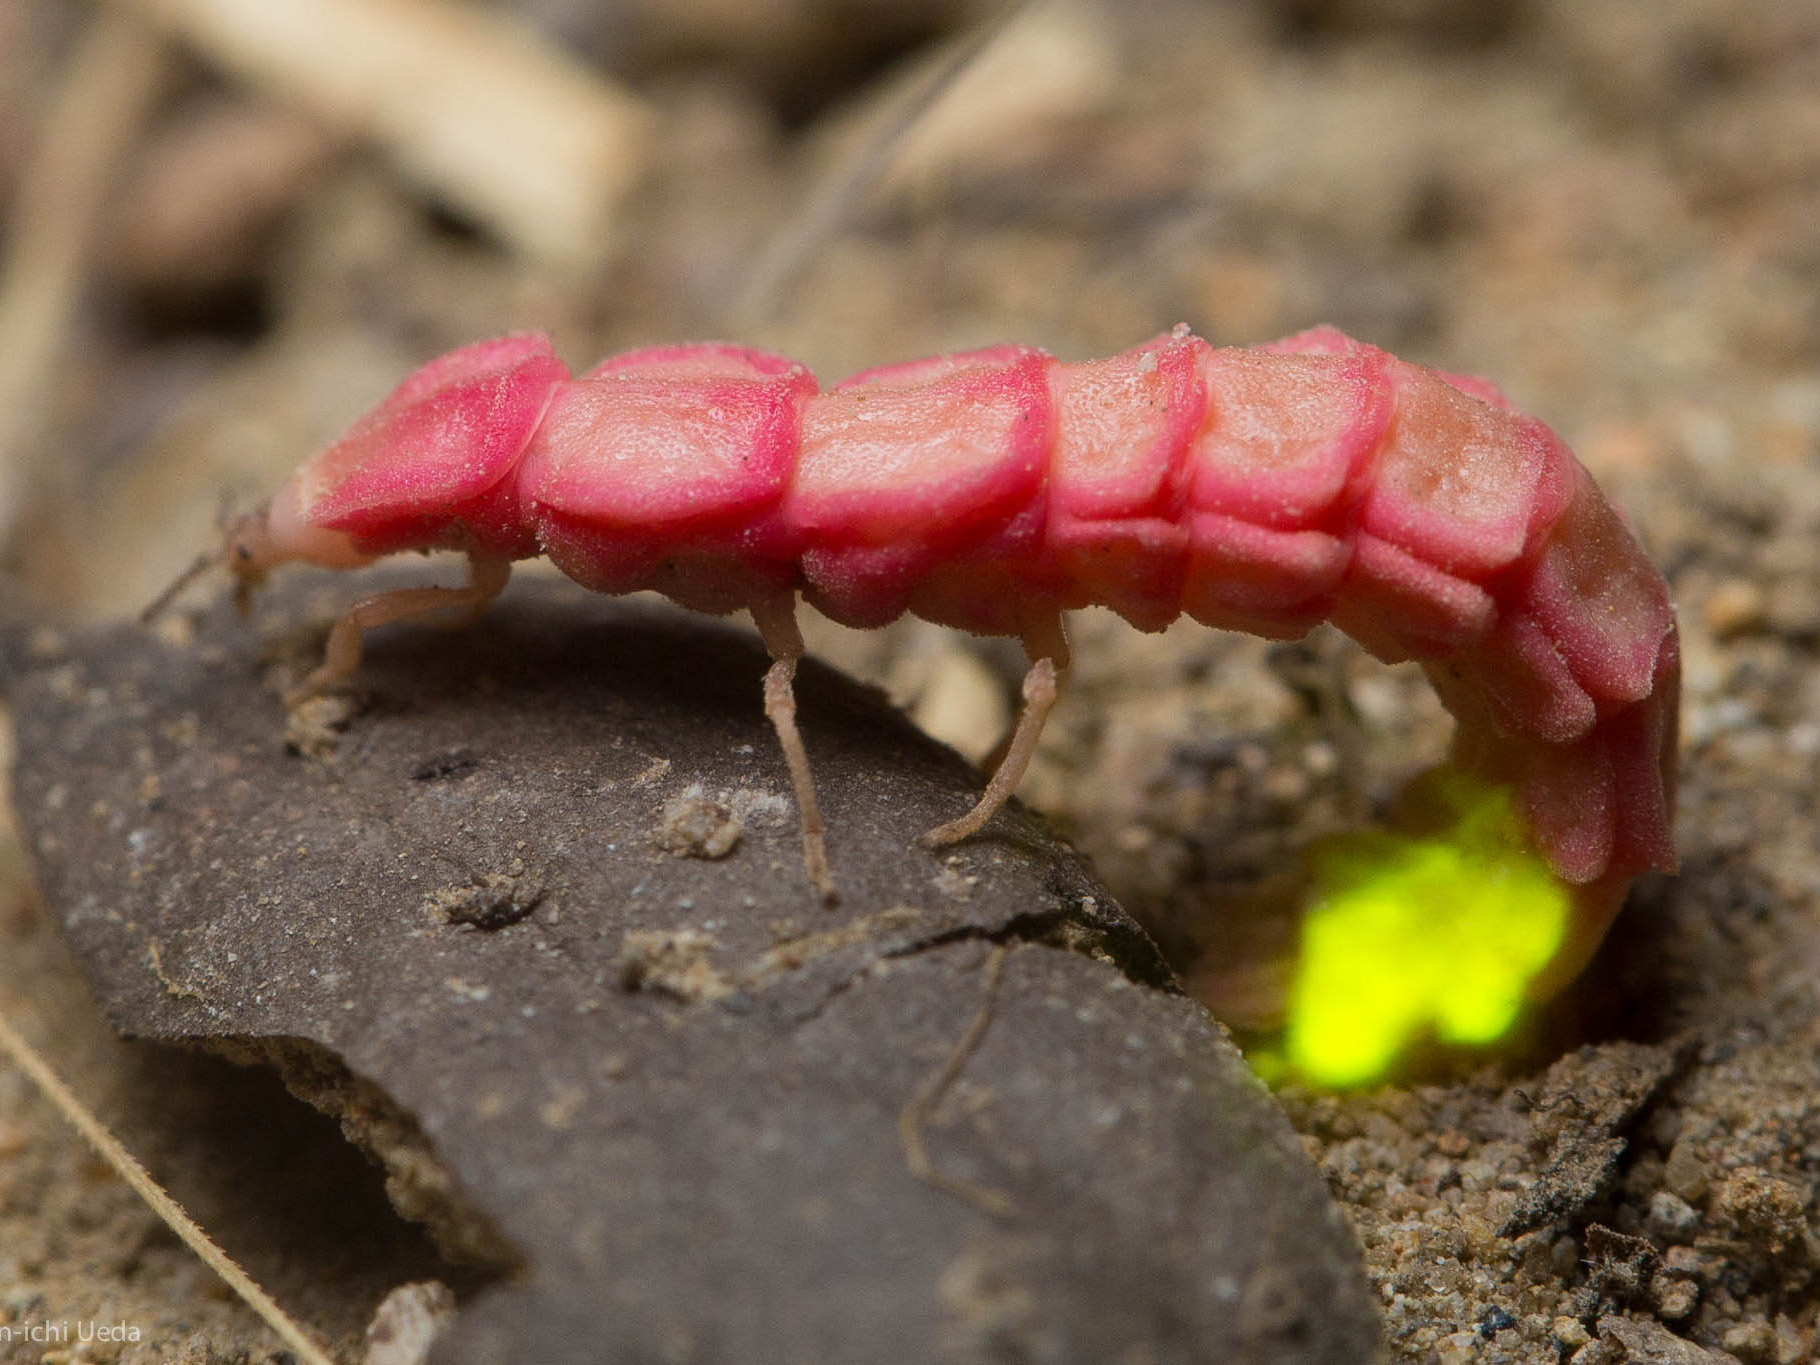 A pink, long, segmented insect (which looks somewhat like a gummy worm with legs) has a tail that is slightly curled under the rest of its body. The tip of the tail is glowing yellow-green.